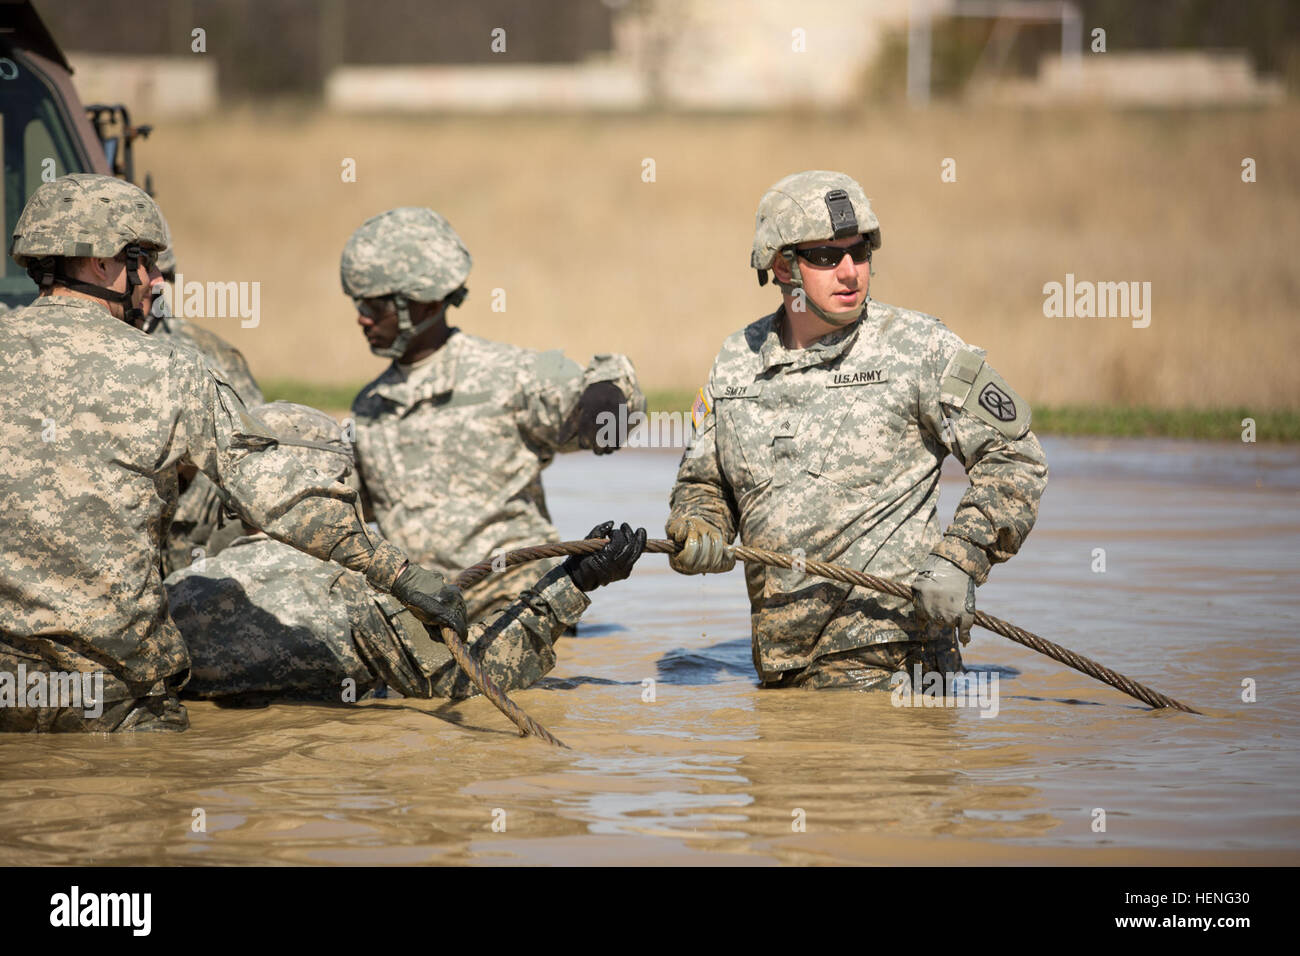 U S Army Sgt Christopher Smith High Resolution Stock Photography And Images Alamy